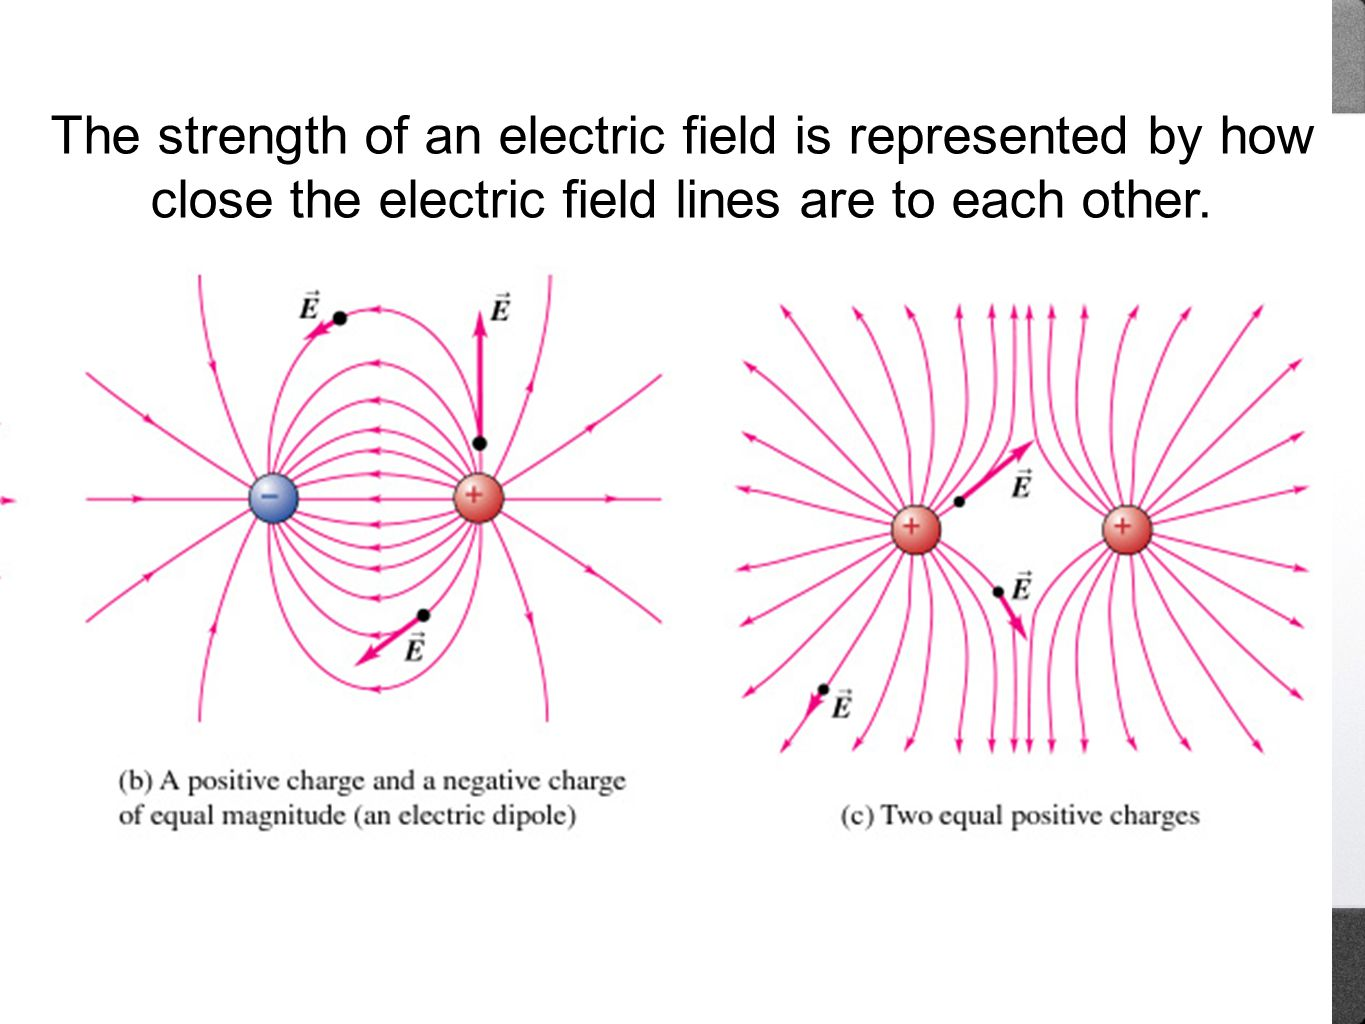 The strength of an electric field is represented by how close the electric field lines are to each other.